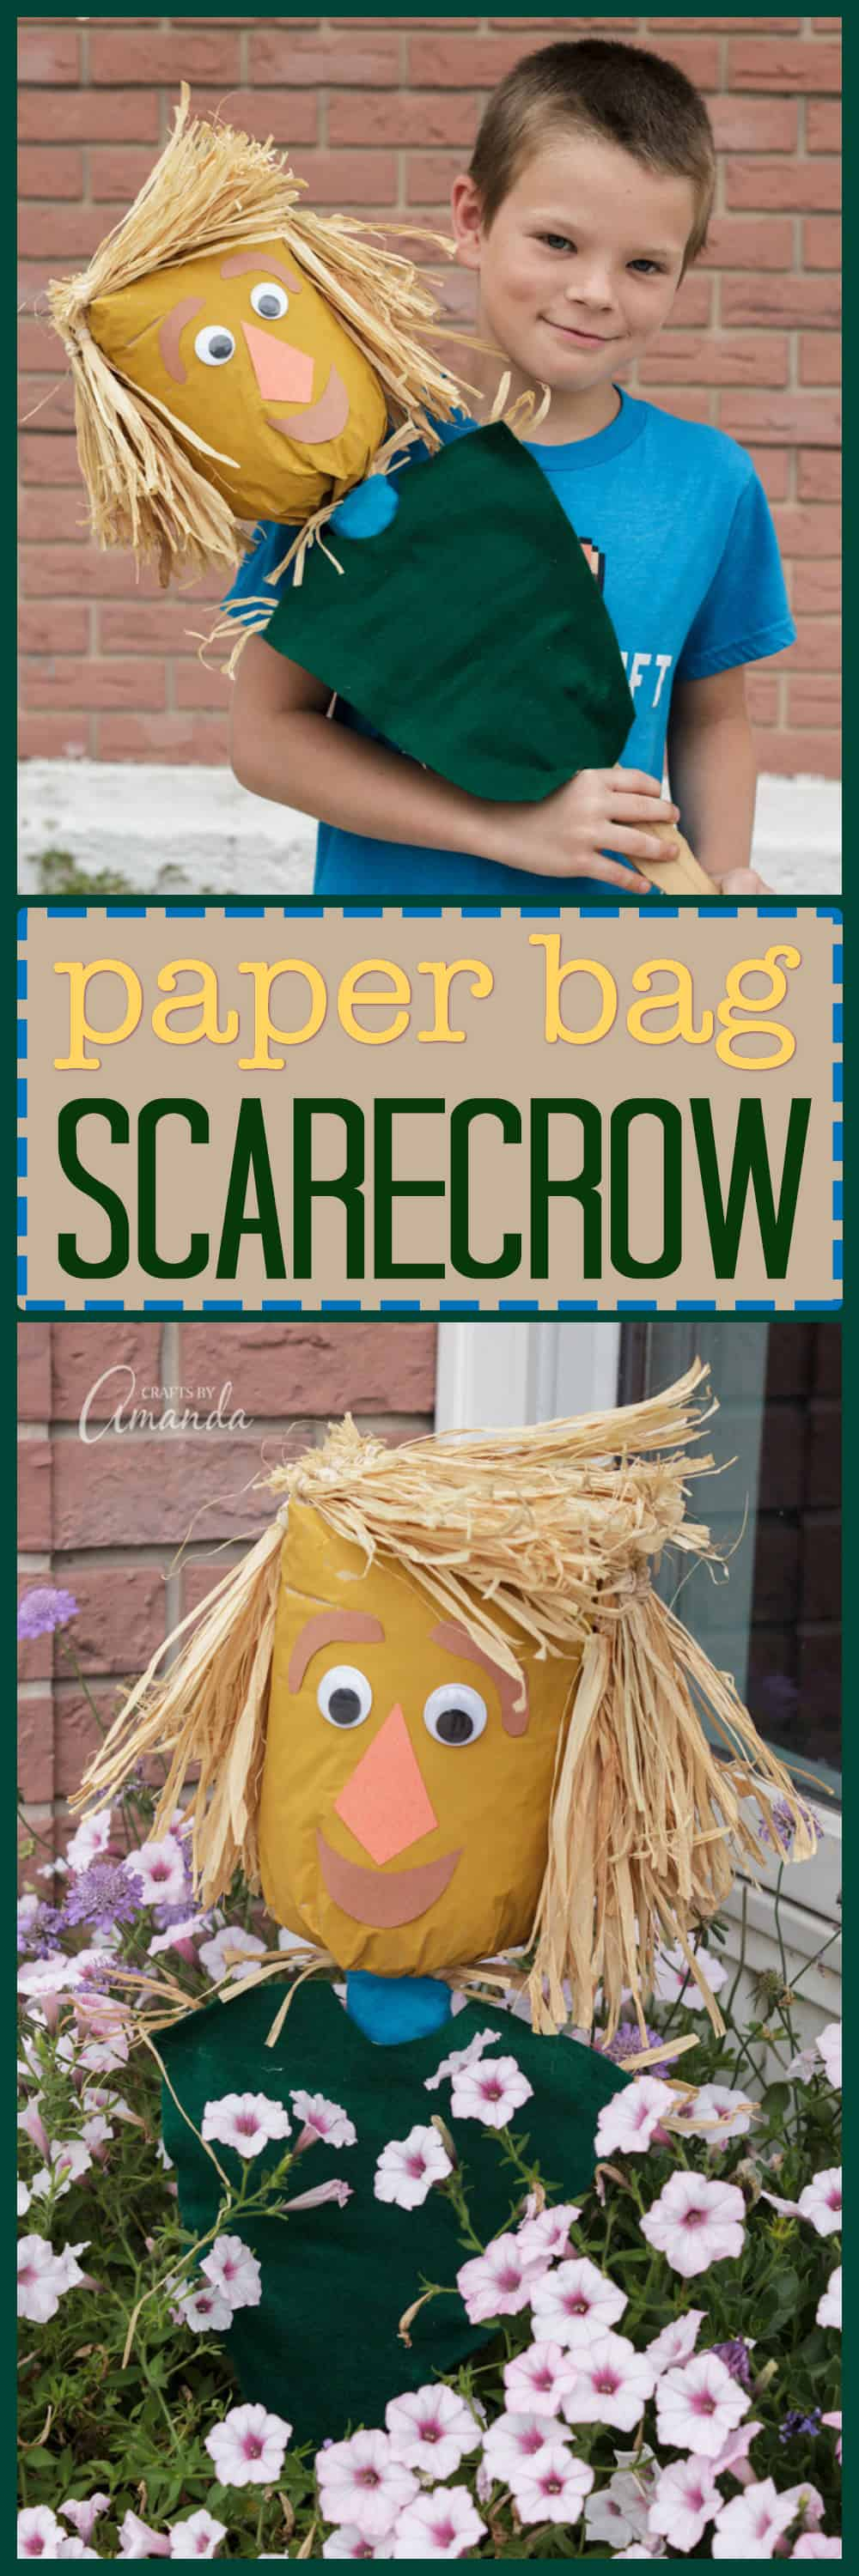 Fall means scarecrows, and that means a fun fall craft for the kids! I created this paper bag scarecrow inspired by the new Amazon Original Kids Series Lost In Oz, now available on Prime Video! #AD #LostInOz